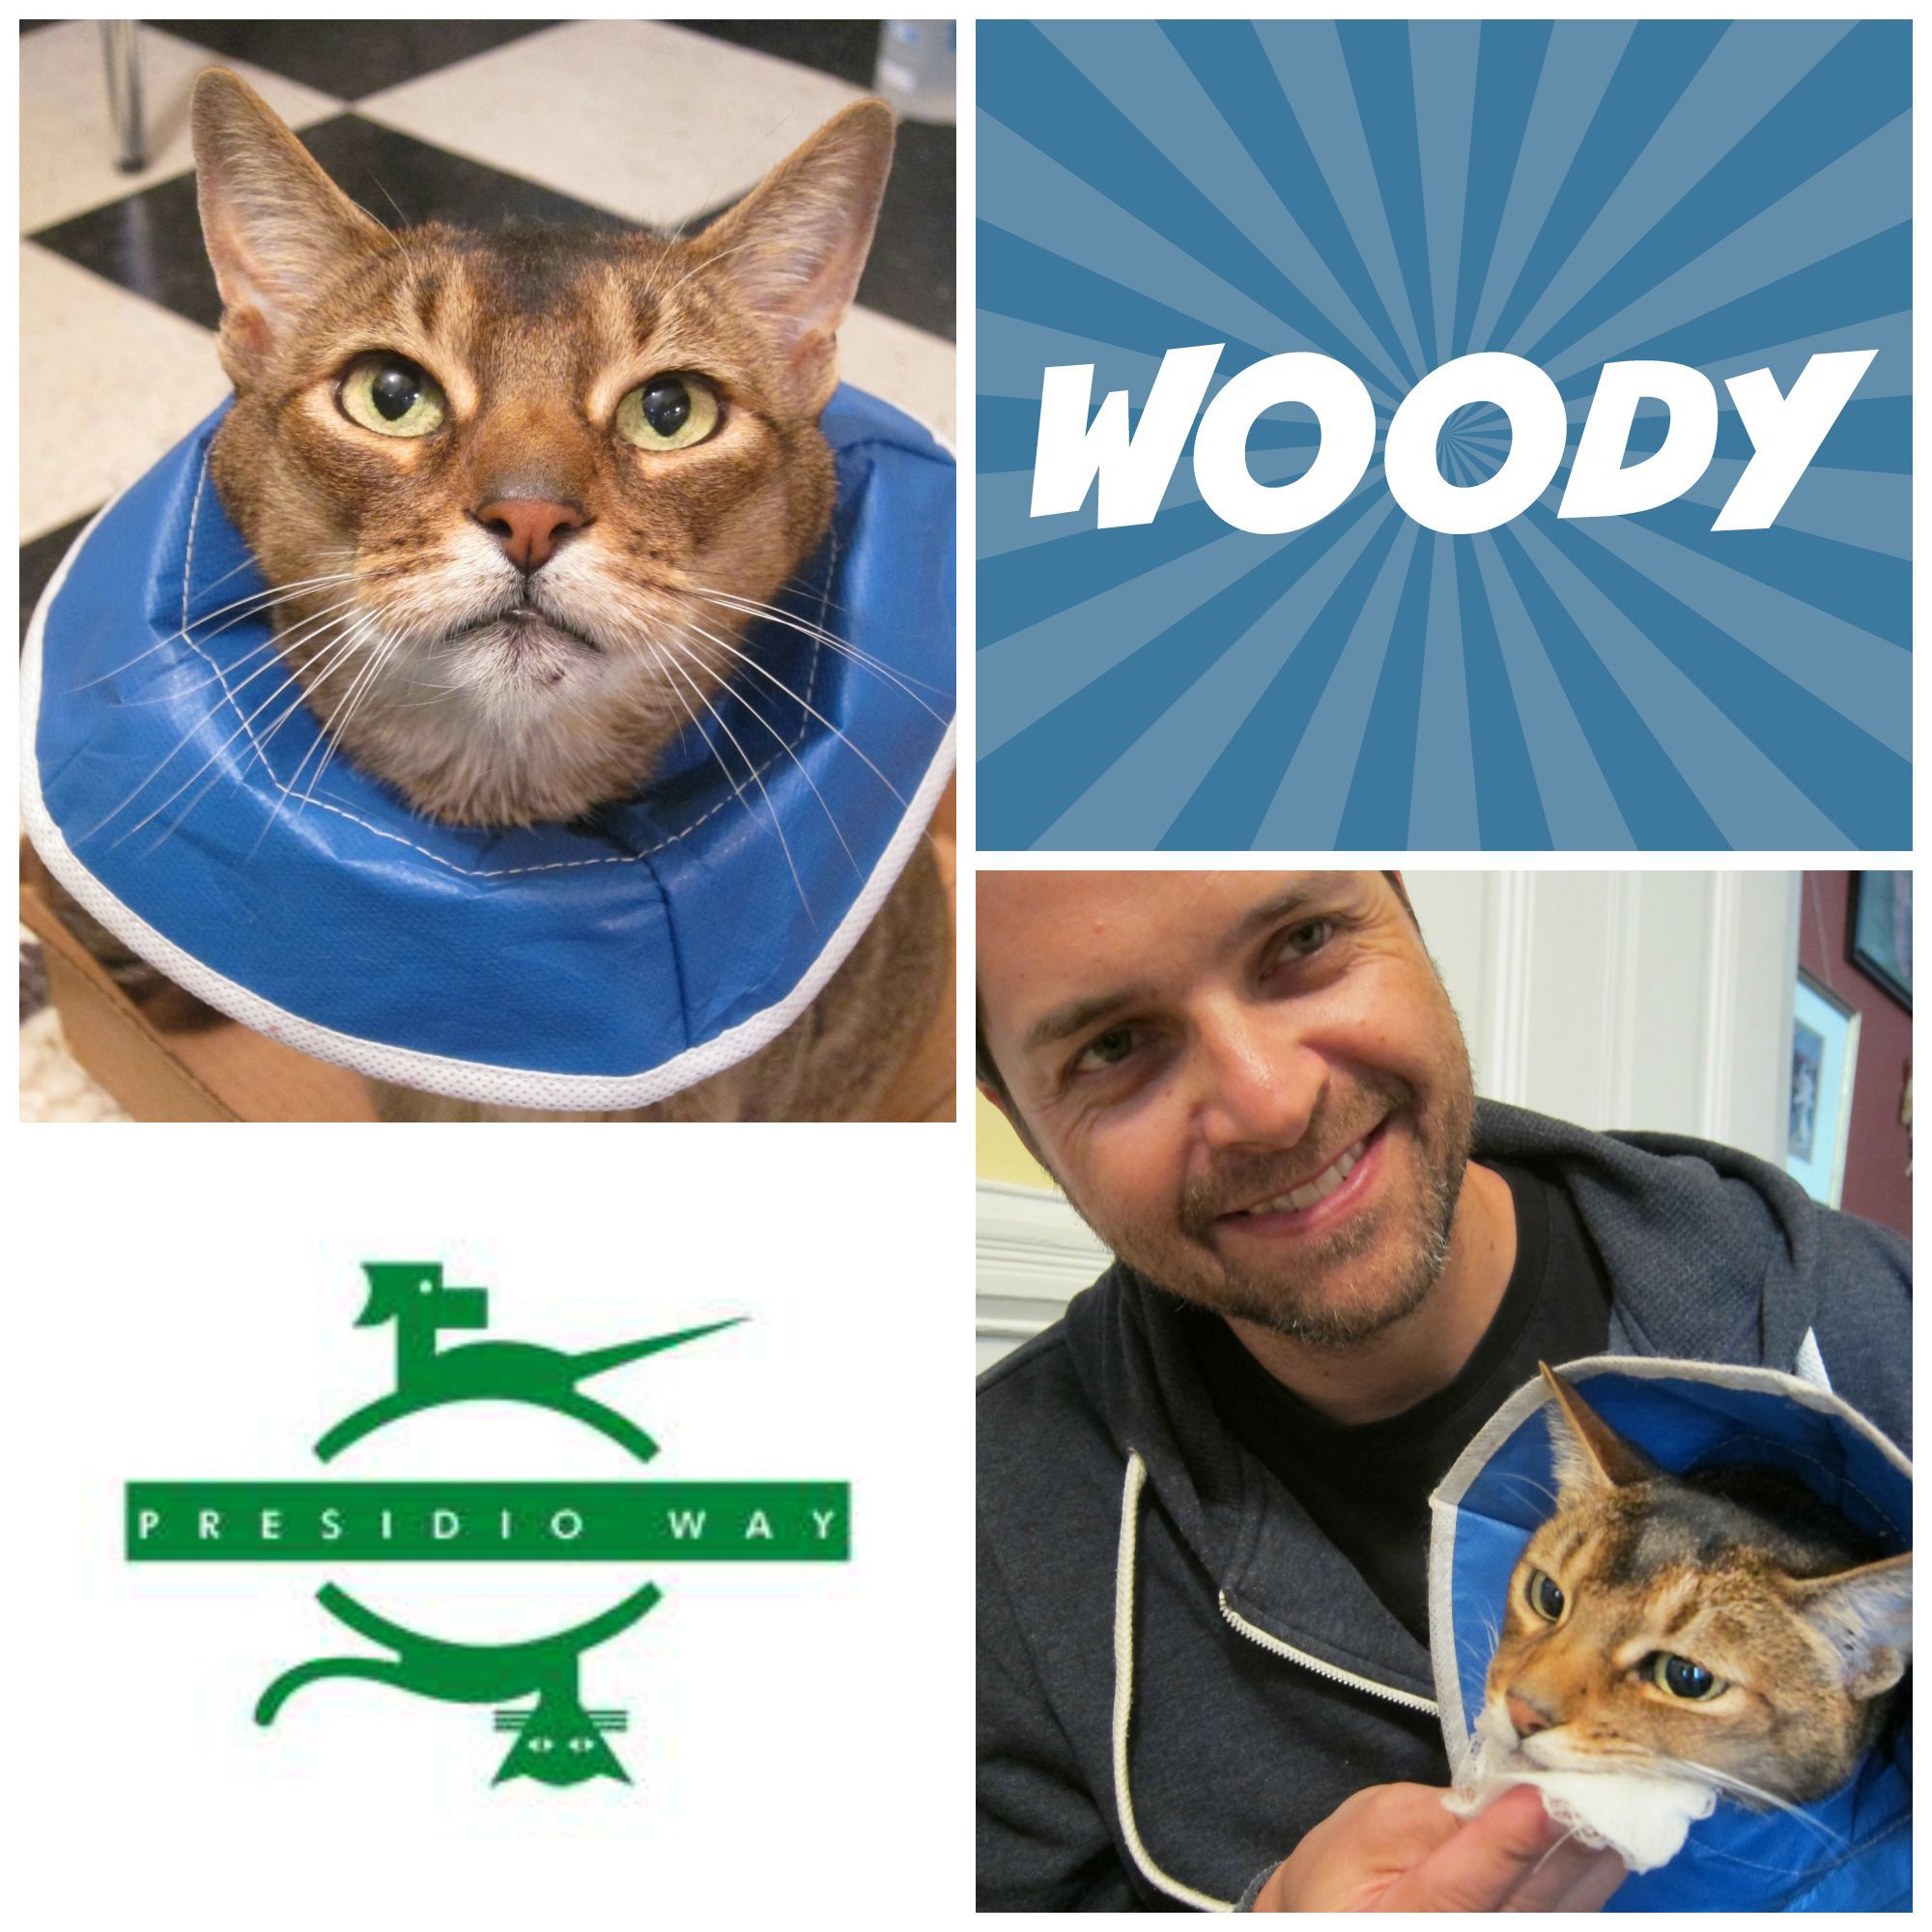 Woody came to us a few weeks ago with a case of feline